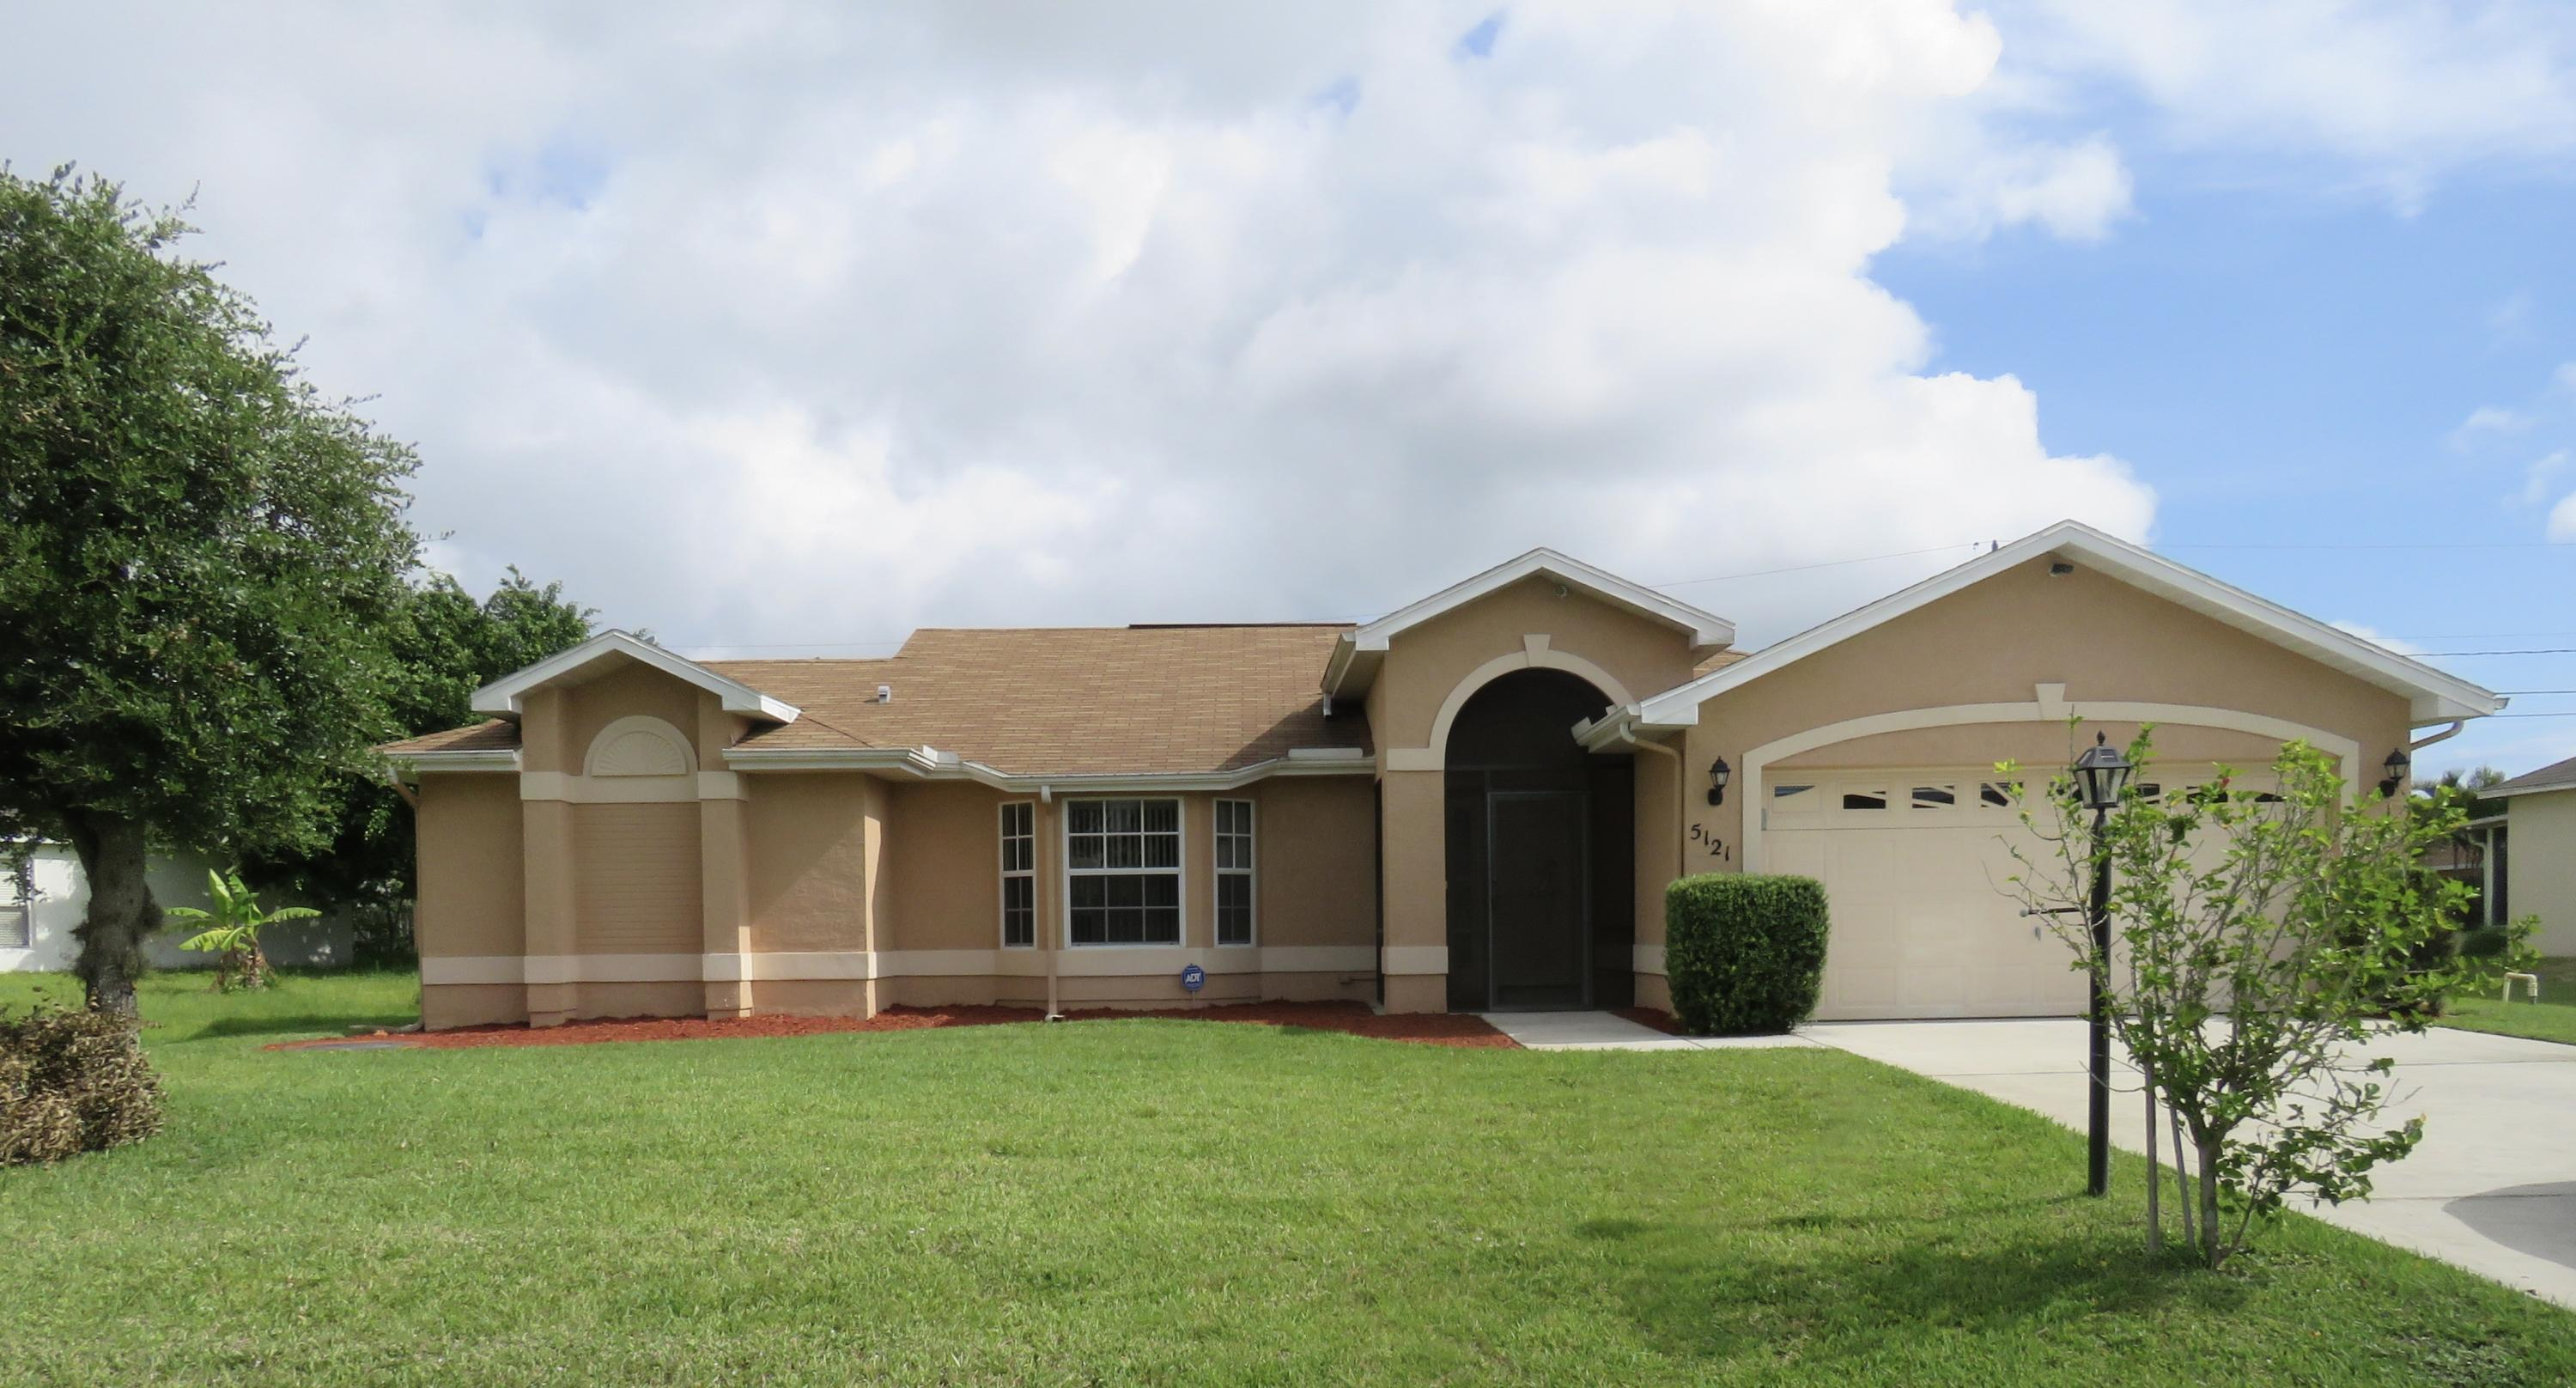 5121 Nw Ever Road, Port Saint Lucie, FL 34983